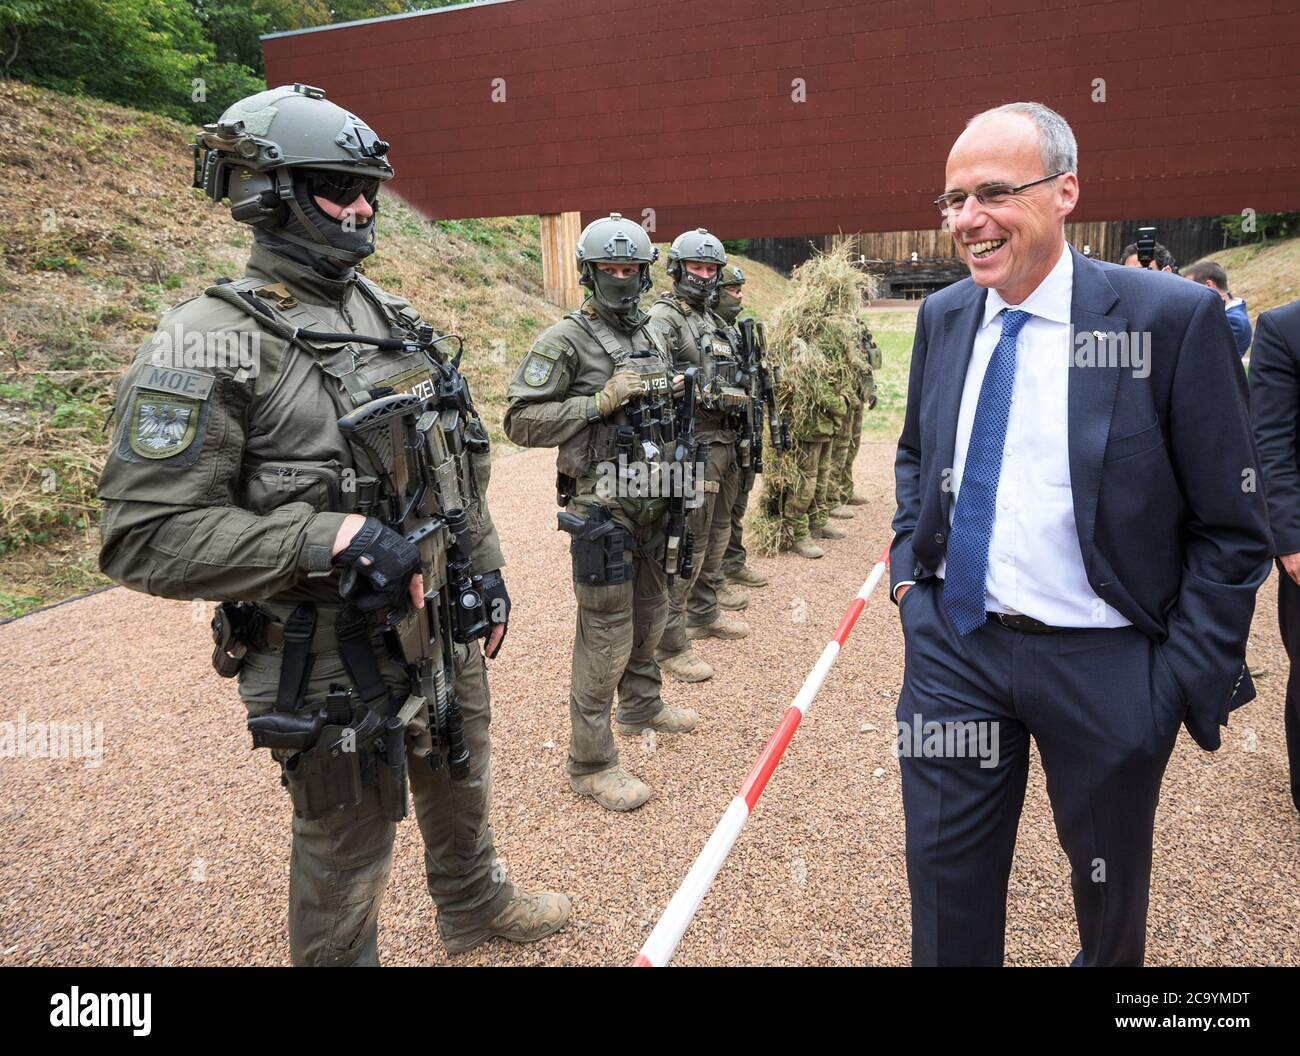 Lorch, Germany. 03rd Aug, 2020. Officials of the Special Operations Command (SEK) and Peter Beuth (CDU), Minister of the Interior of Hesse, stand side by side. The Hessian police are opening a modernized shooting range for training on police medium-range weapons. Credit: Andreas Arnold/dpa/Alamy Live News Stock Photo